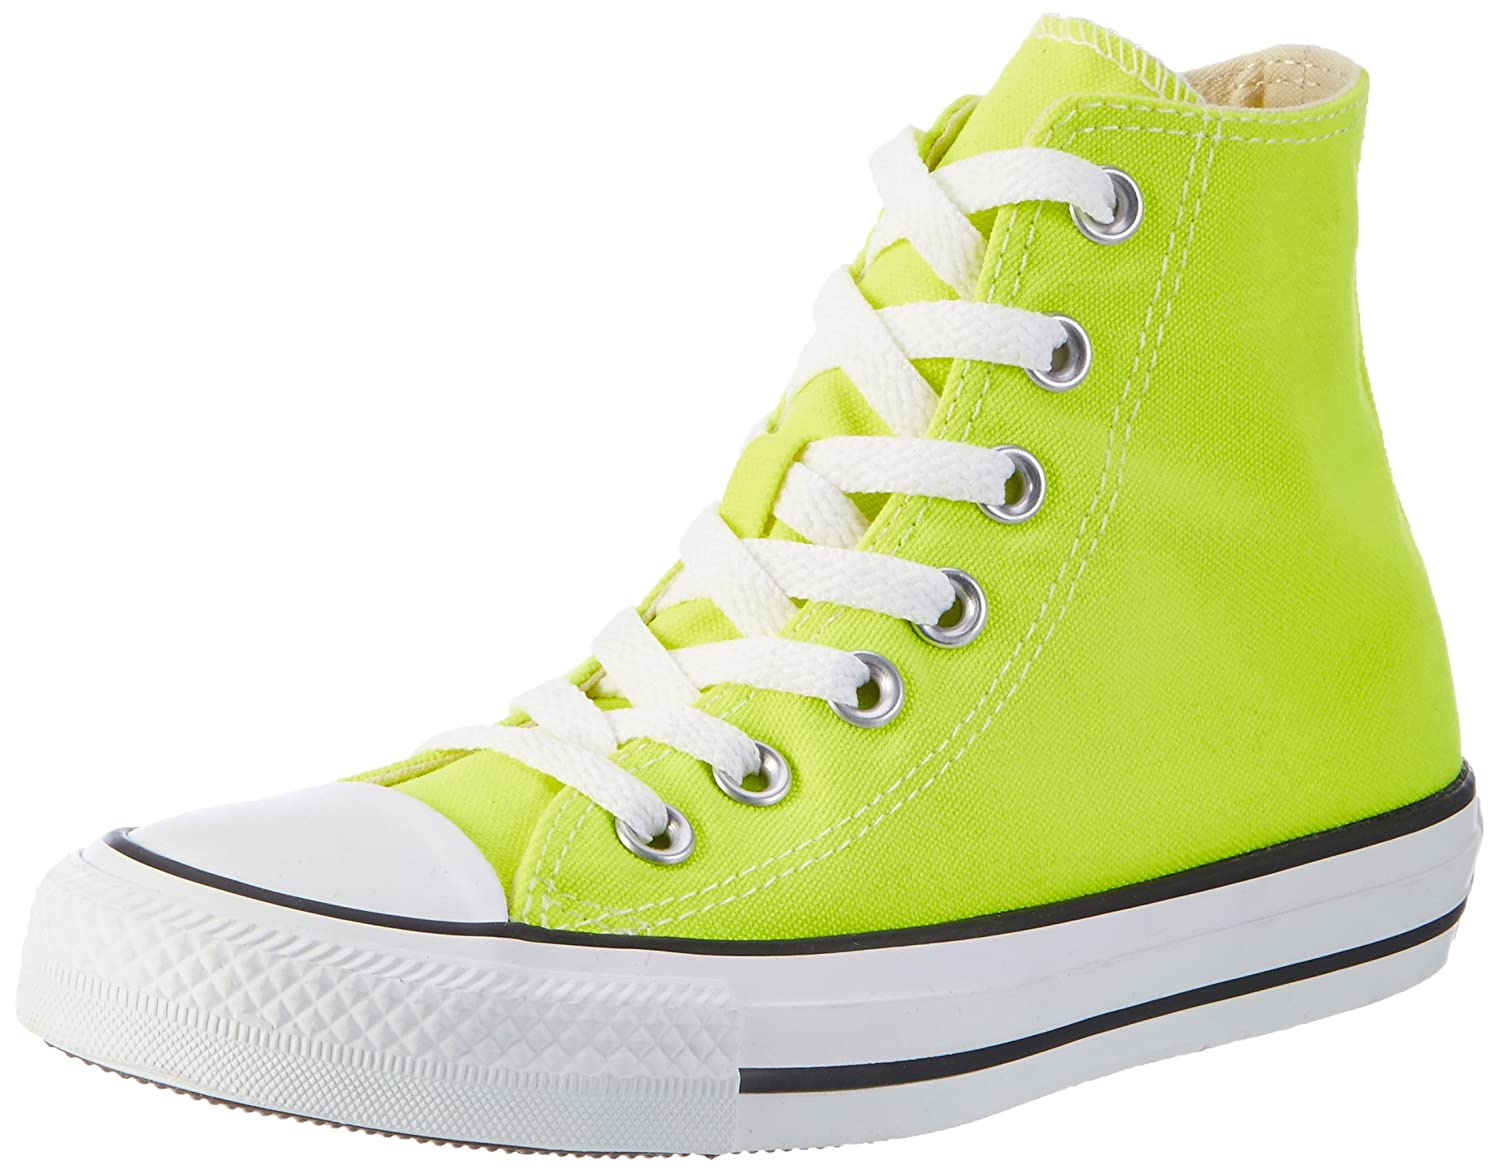 Converse Ctas Core mode Hi, Baskets Jaune mode mixte Baskets adulte Jaune - Jaune 0d9b6fb - shopssong.space